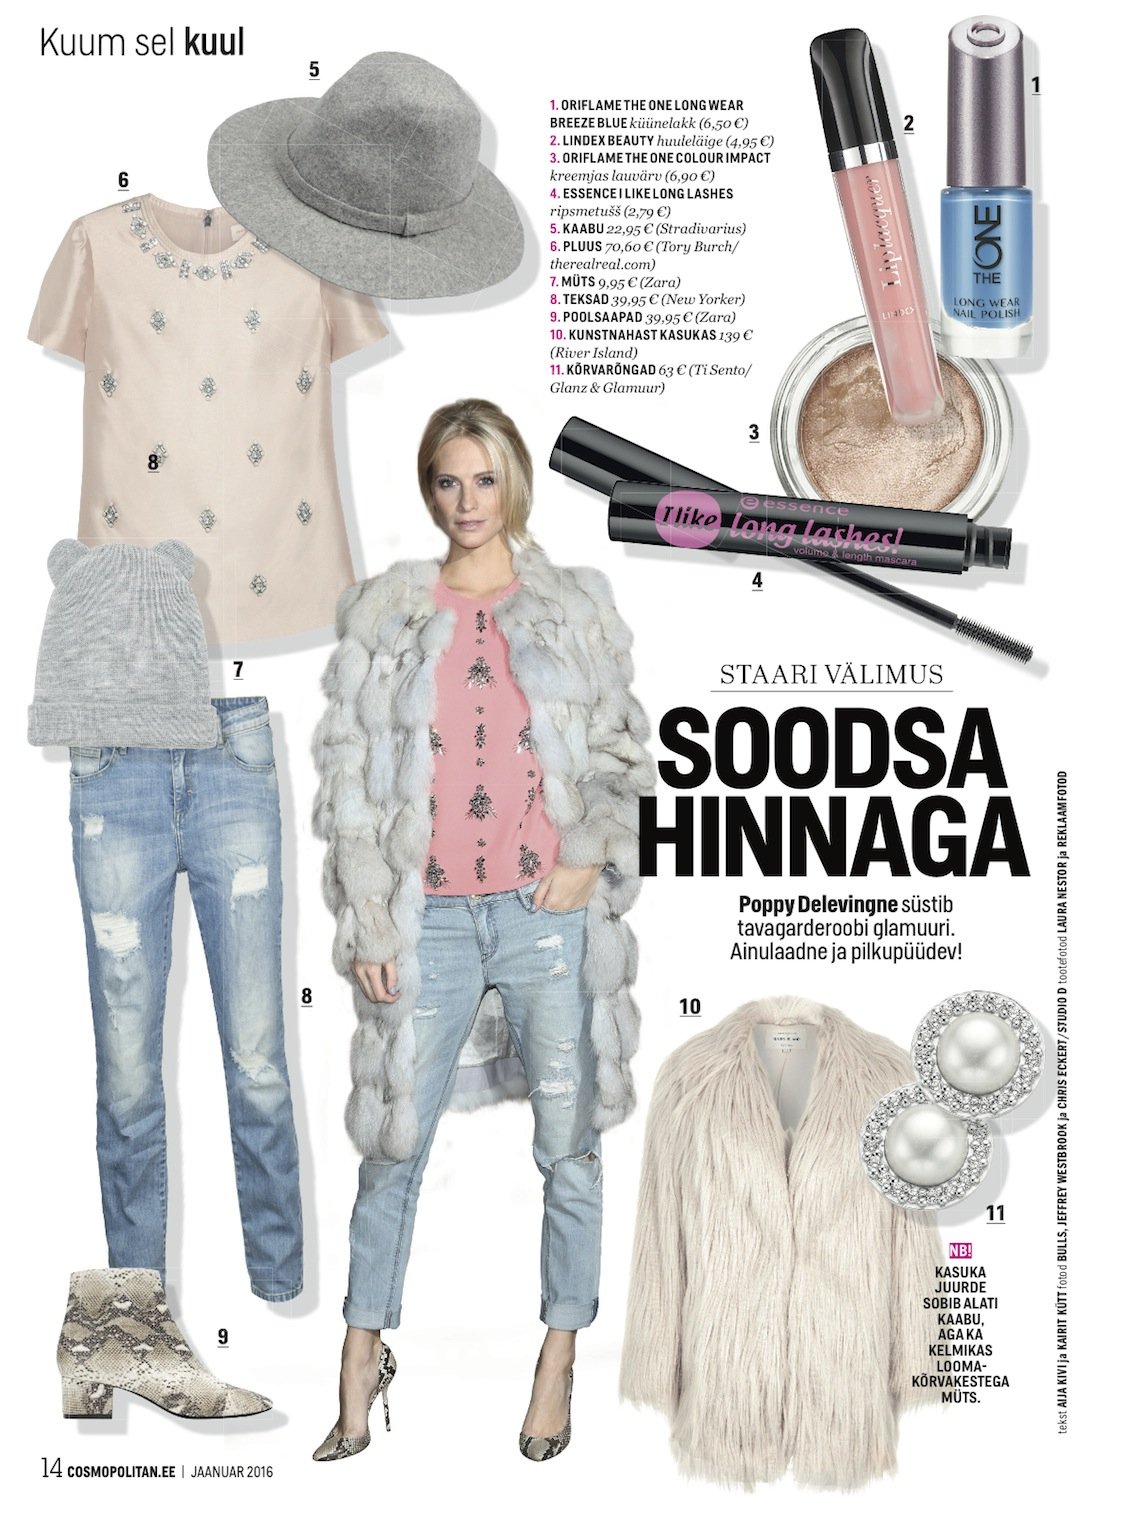 200-aija-kivi-for-cosmopolitan-estonia-magazine-stylist-fashion-editor